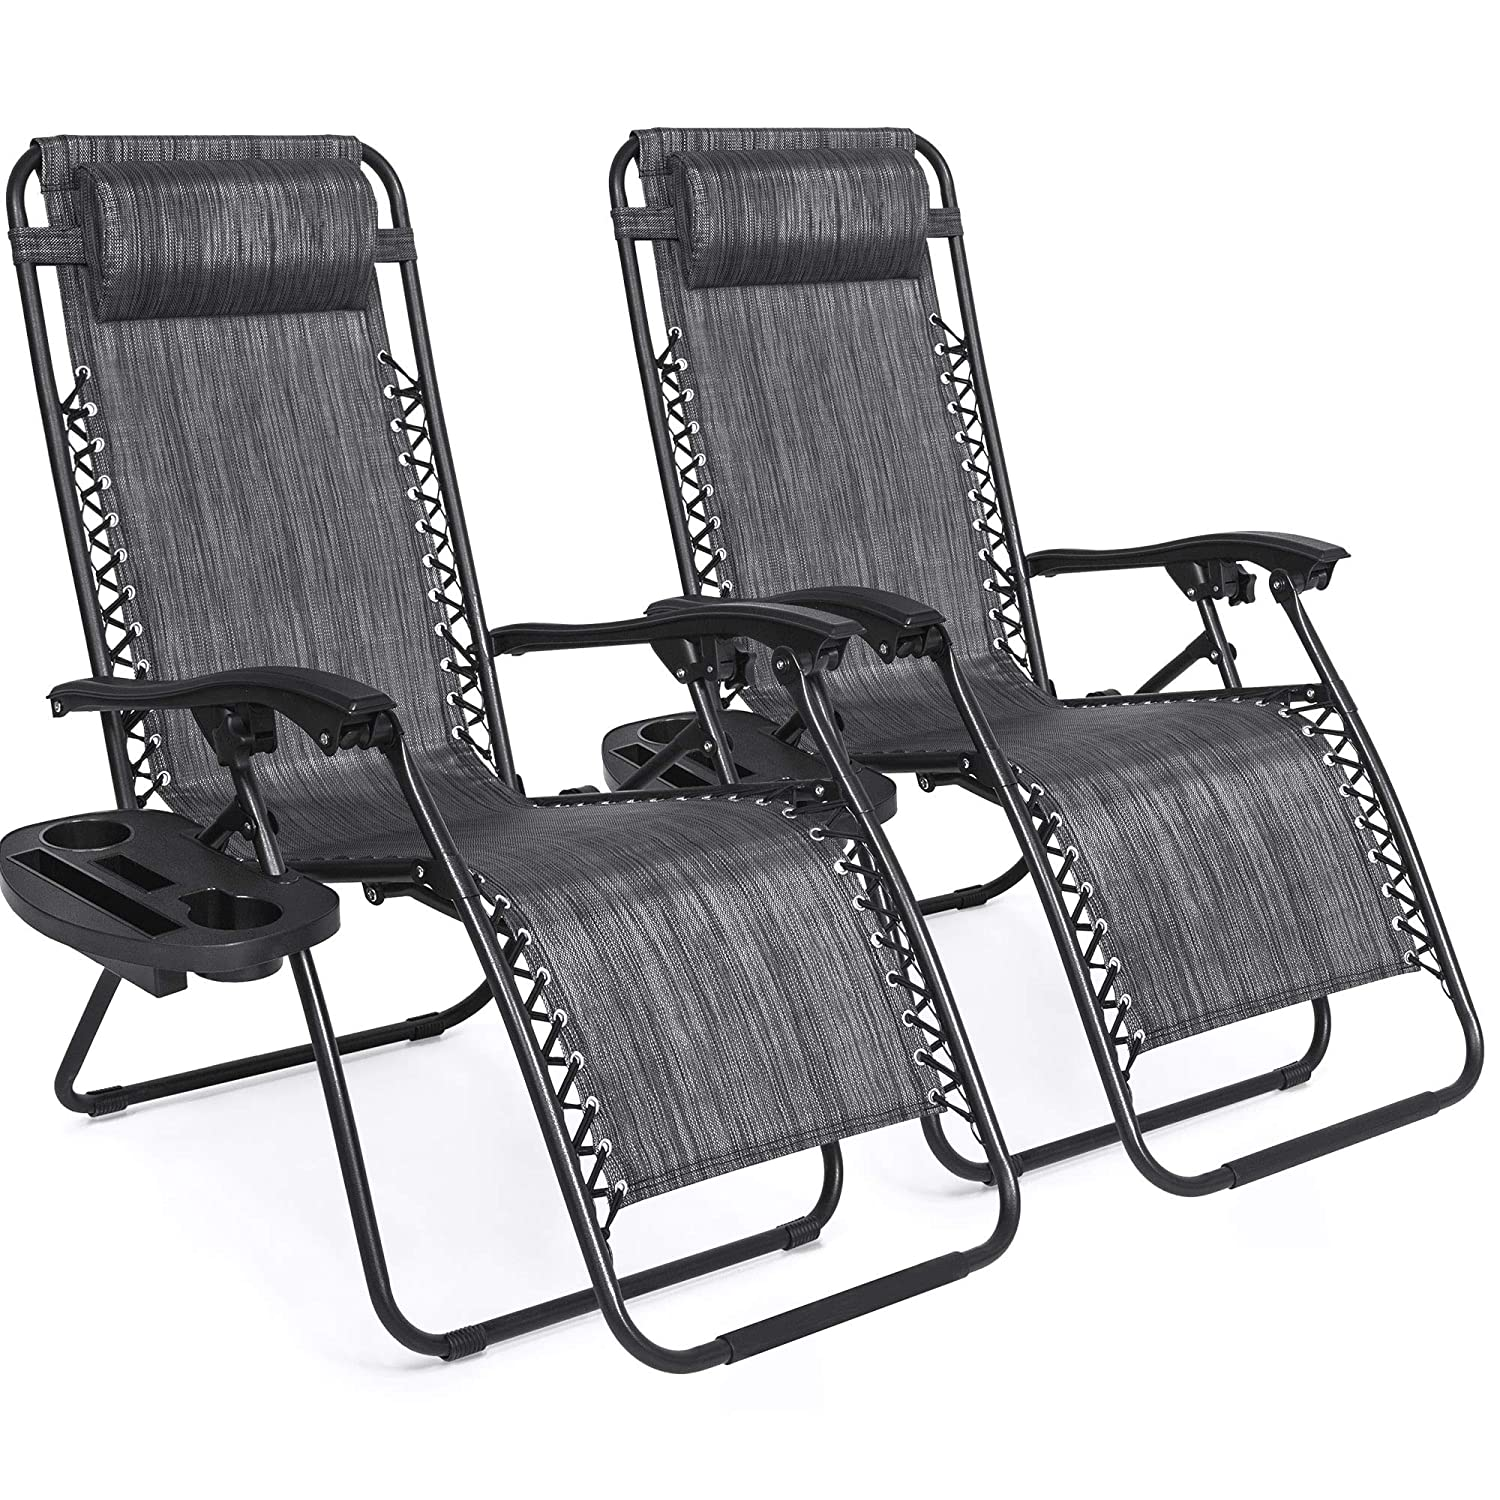 Best Choice Products Set of 2 Adjustable Zero Gravity Lounge Chair Recliners for Patio, Pool w/Cup Holder Trays, Pillows - Gray